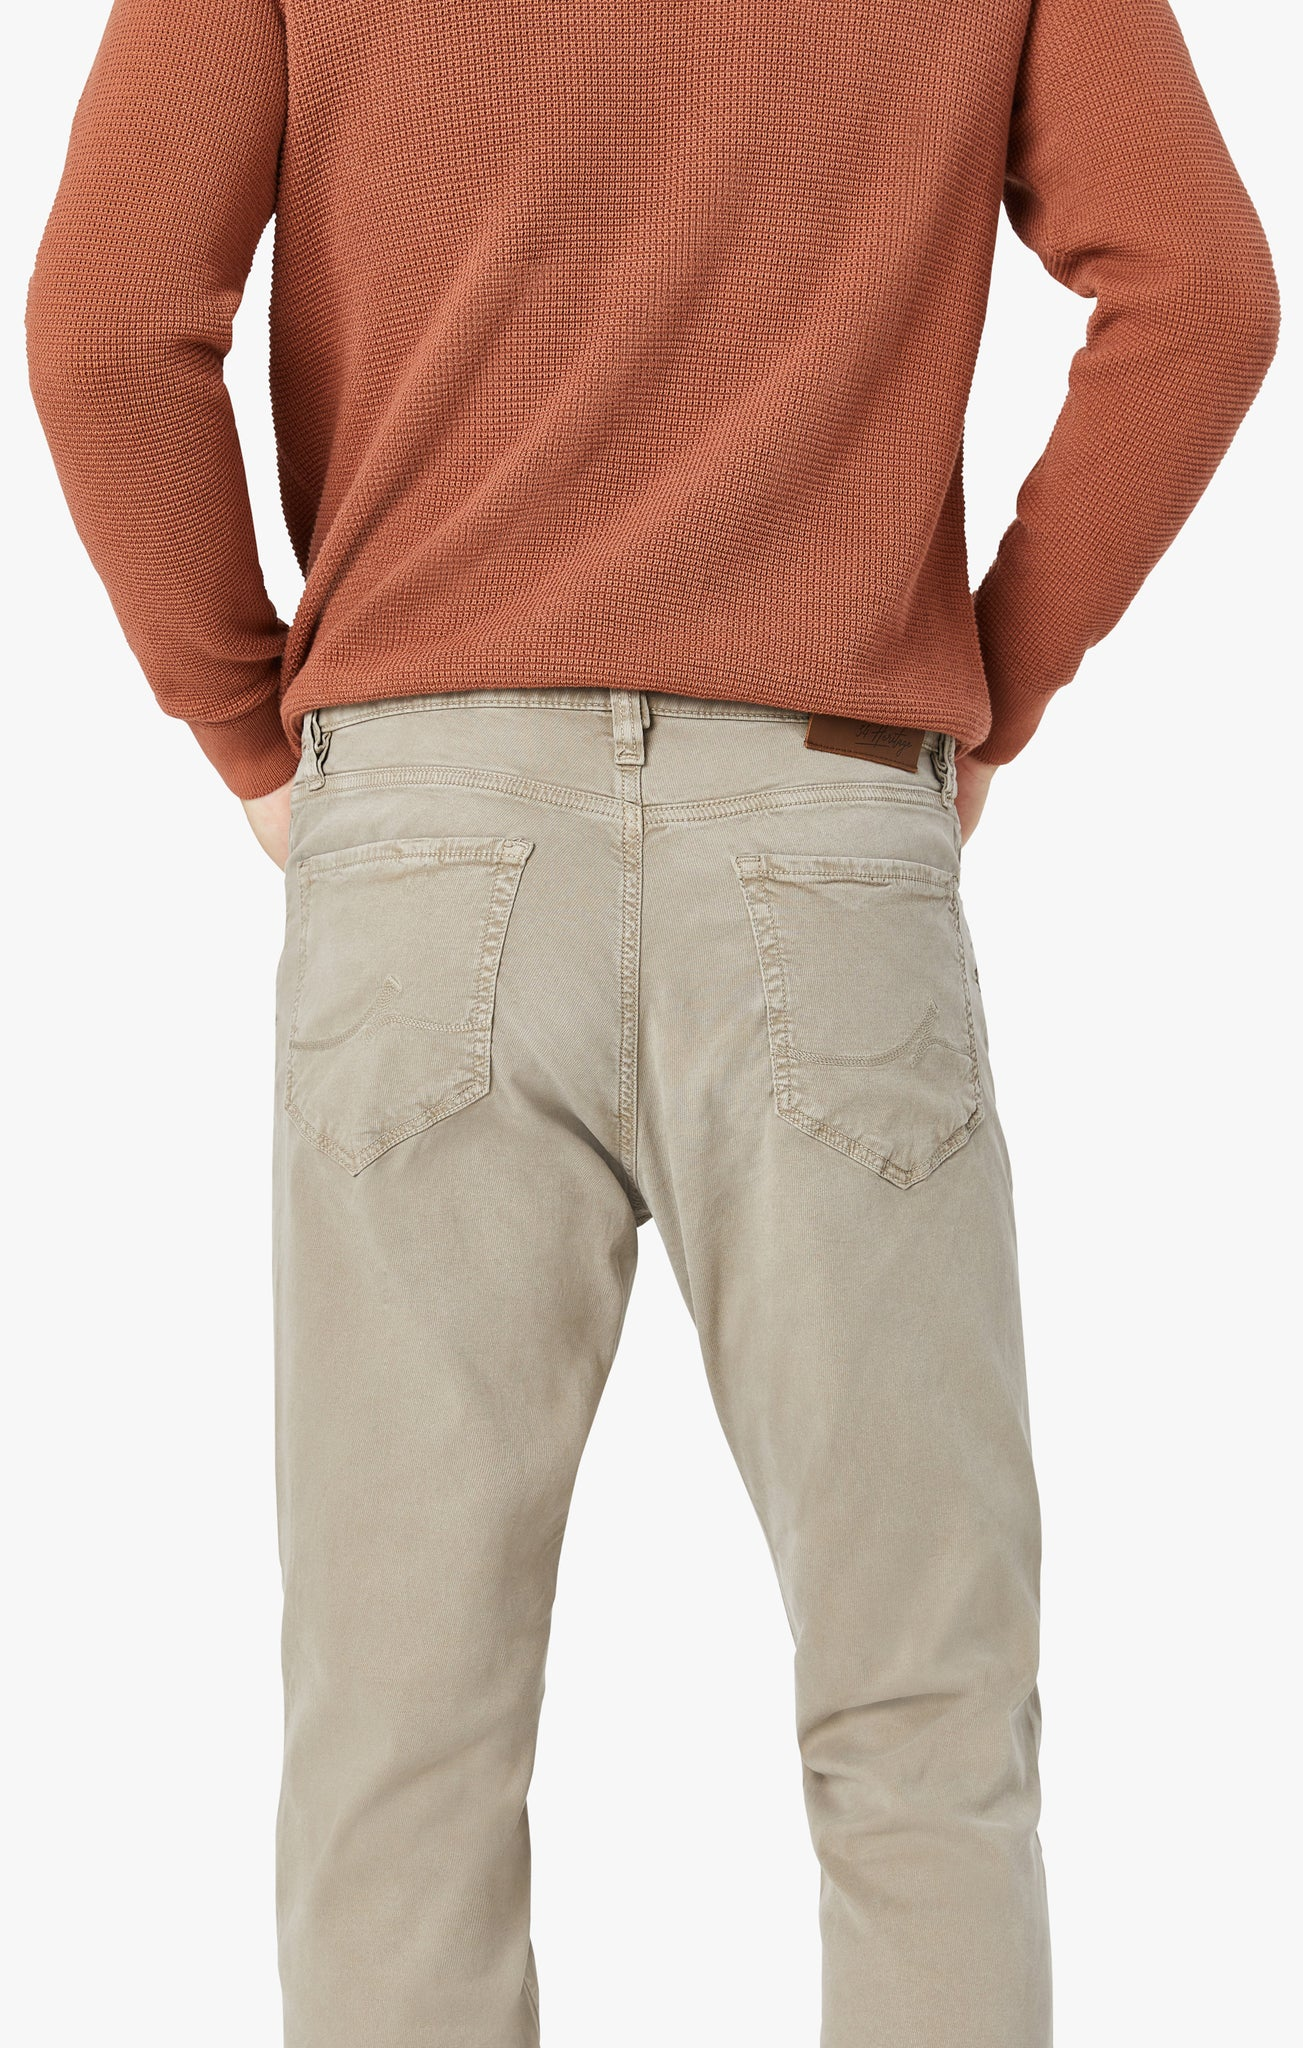 Charisma Classic Fit Pants in Mushroom Soft Touch